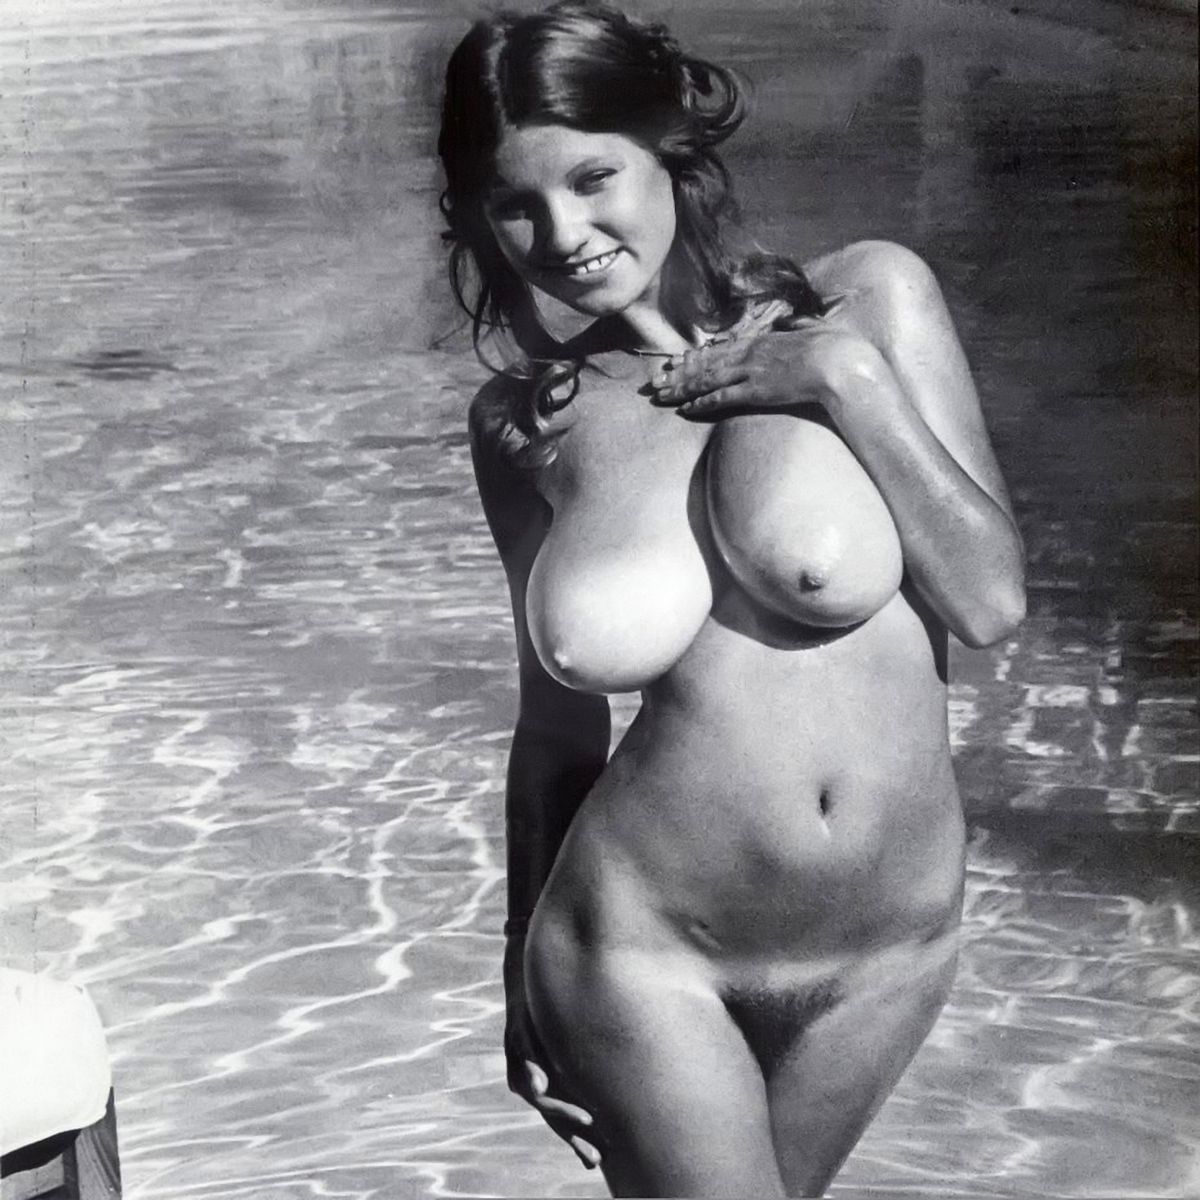 Big tit vintage women — photo 5